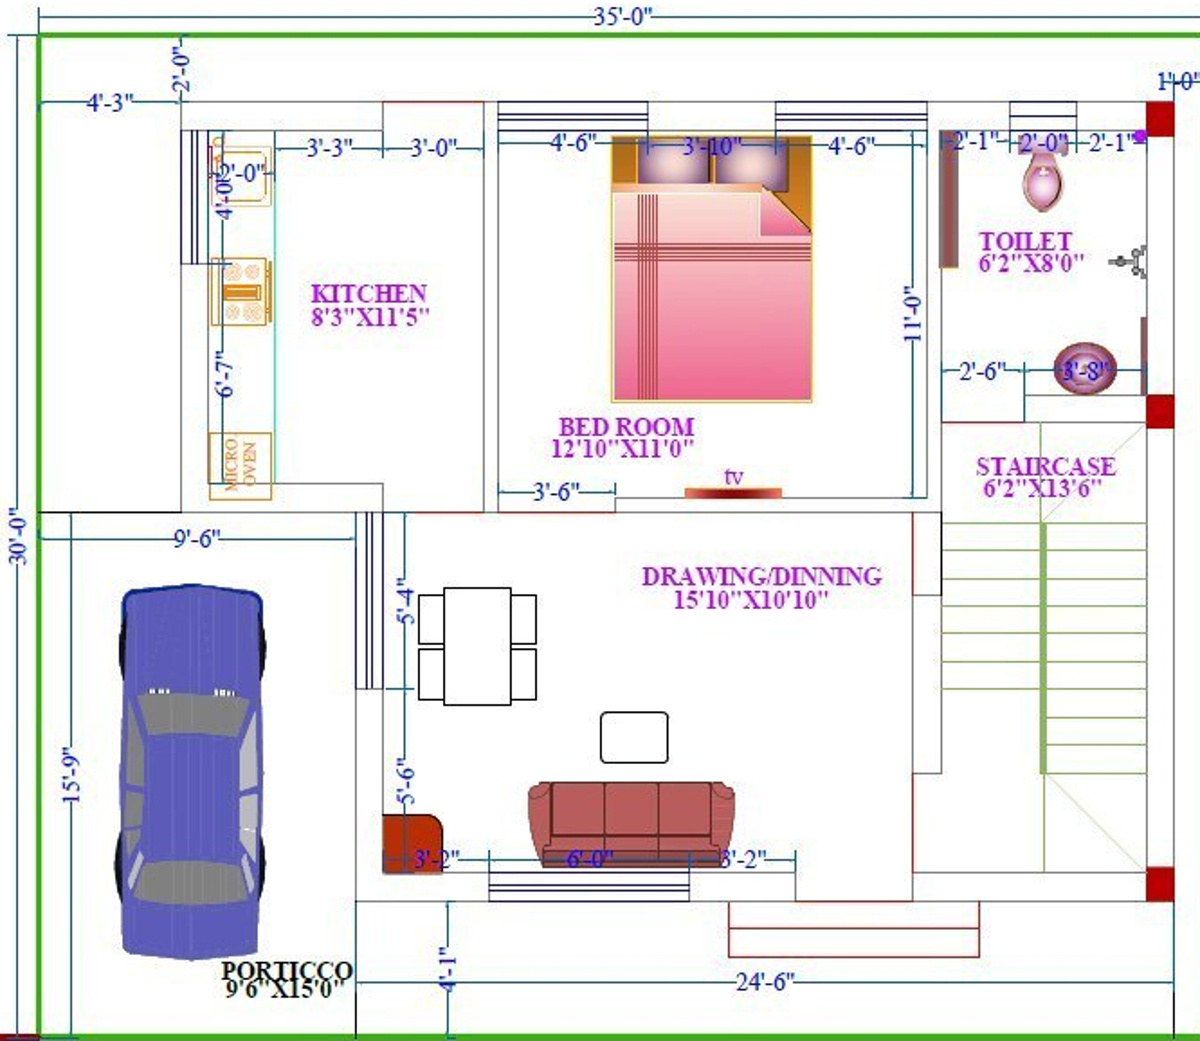 Appolo presidency simplex and duplex in sundarpada for Duplex designs prices